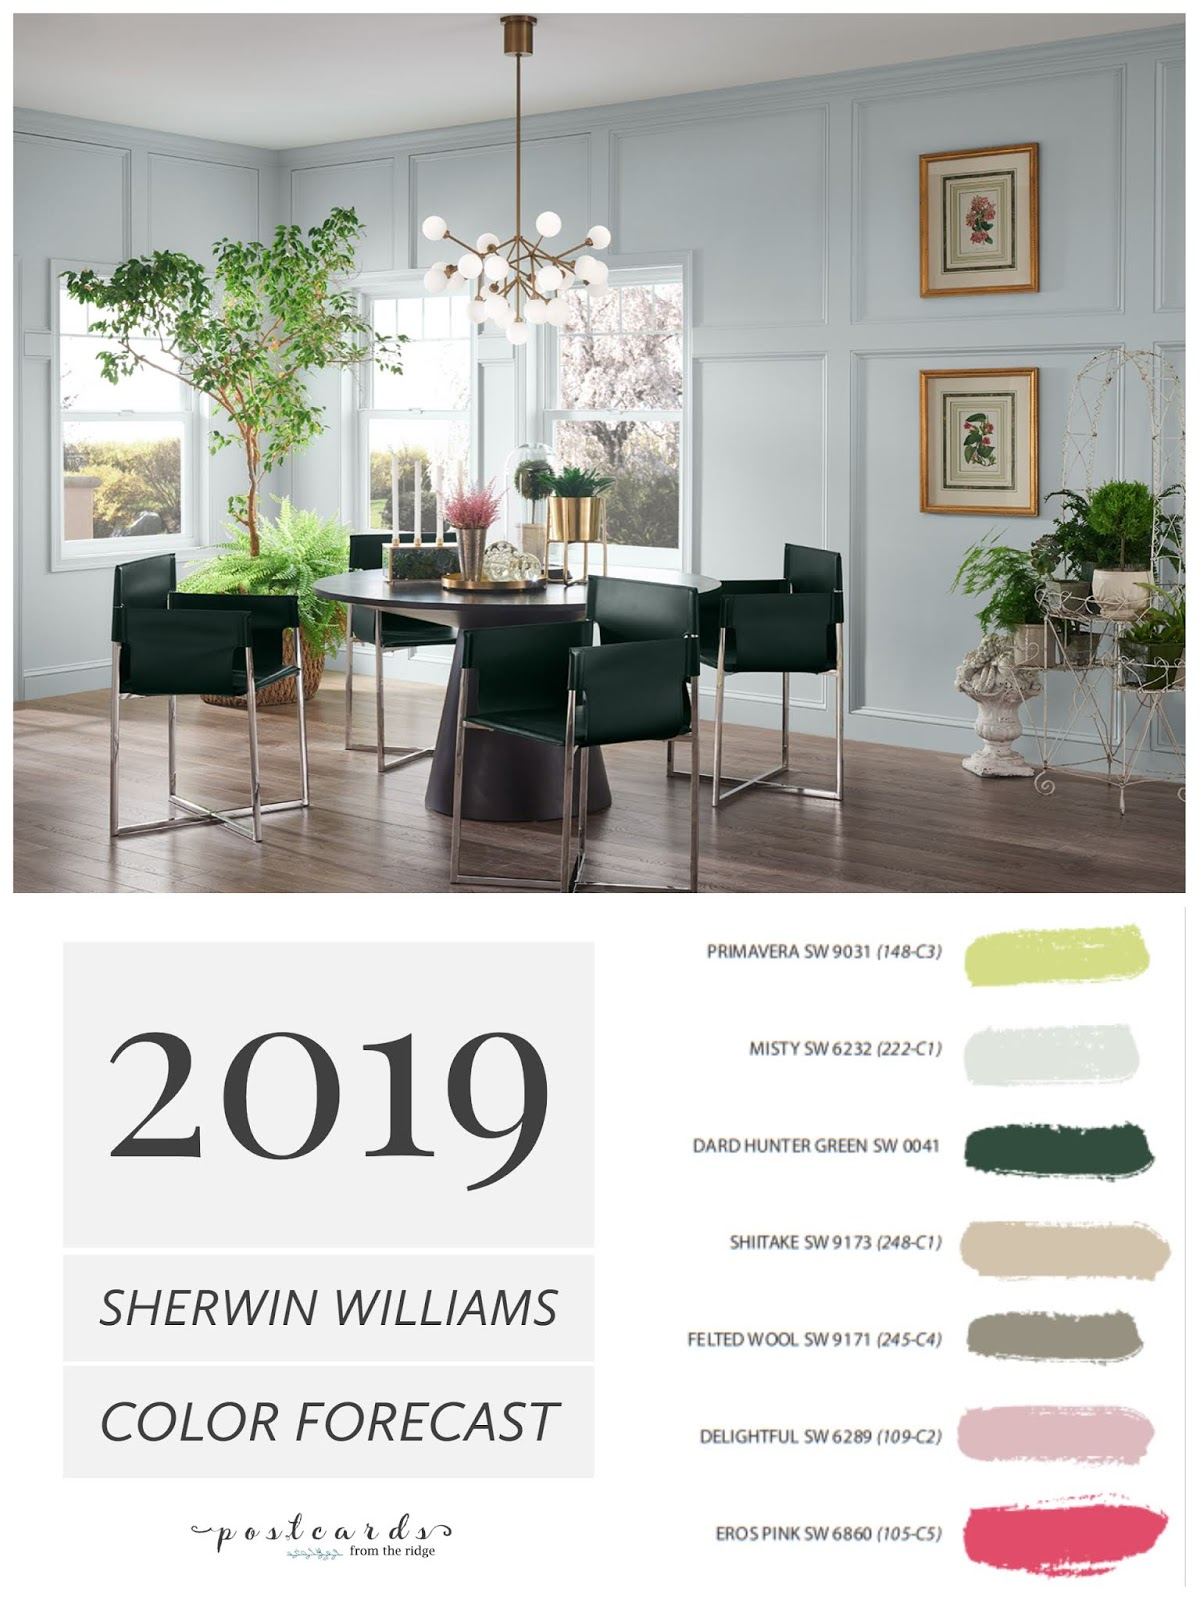 2019 paint color forecast from sherwin williams - 2019 home color trends ...